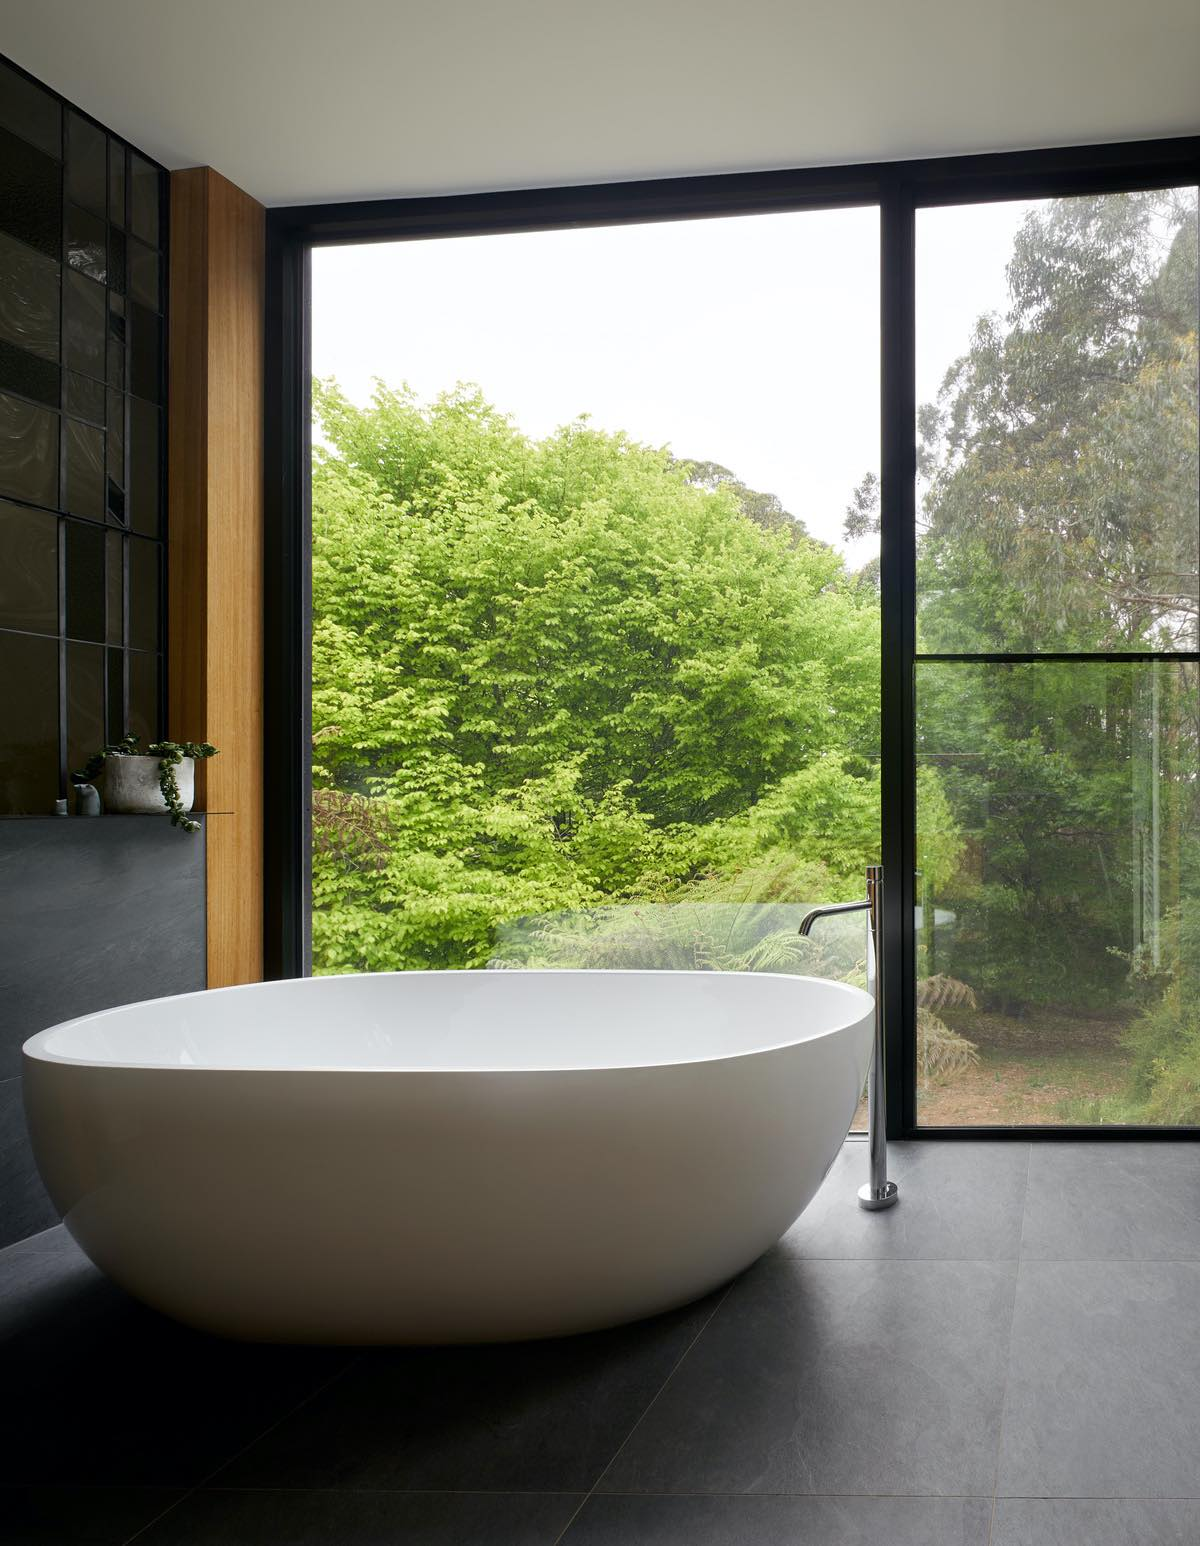 a white oval shaped bathtub in bathroom having spectacular view of nature through glass window